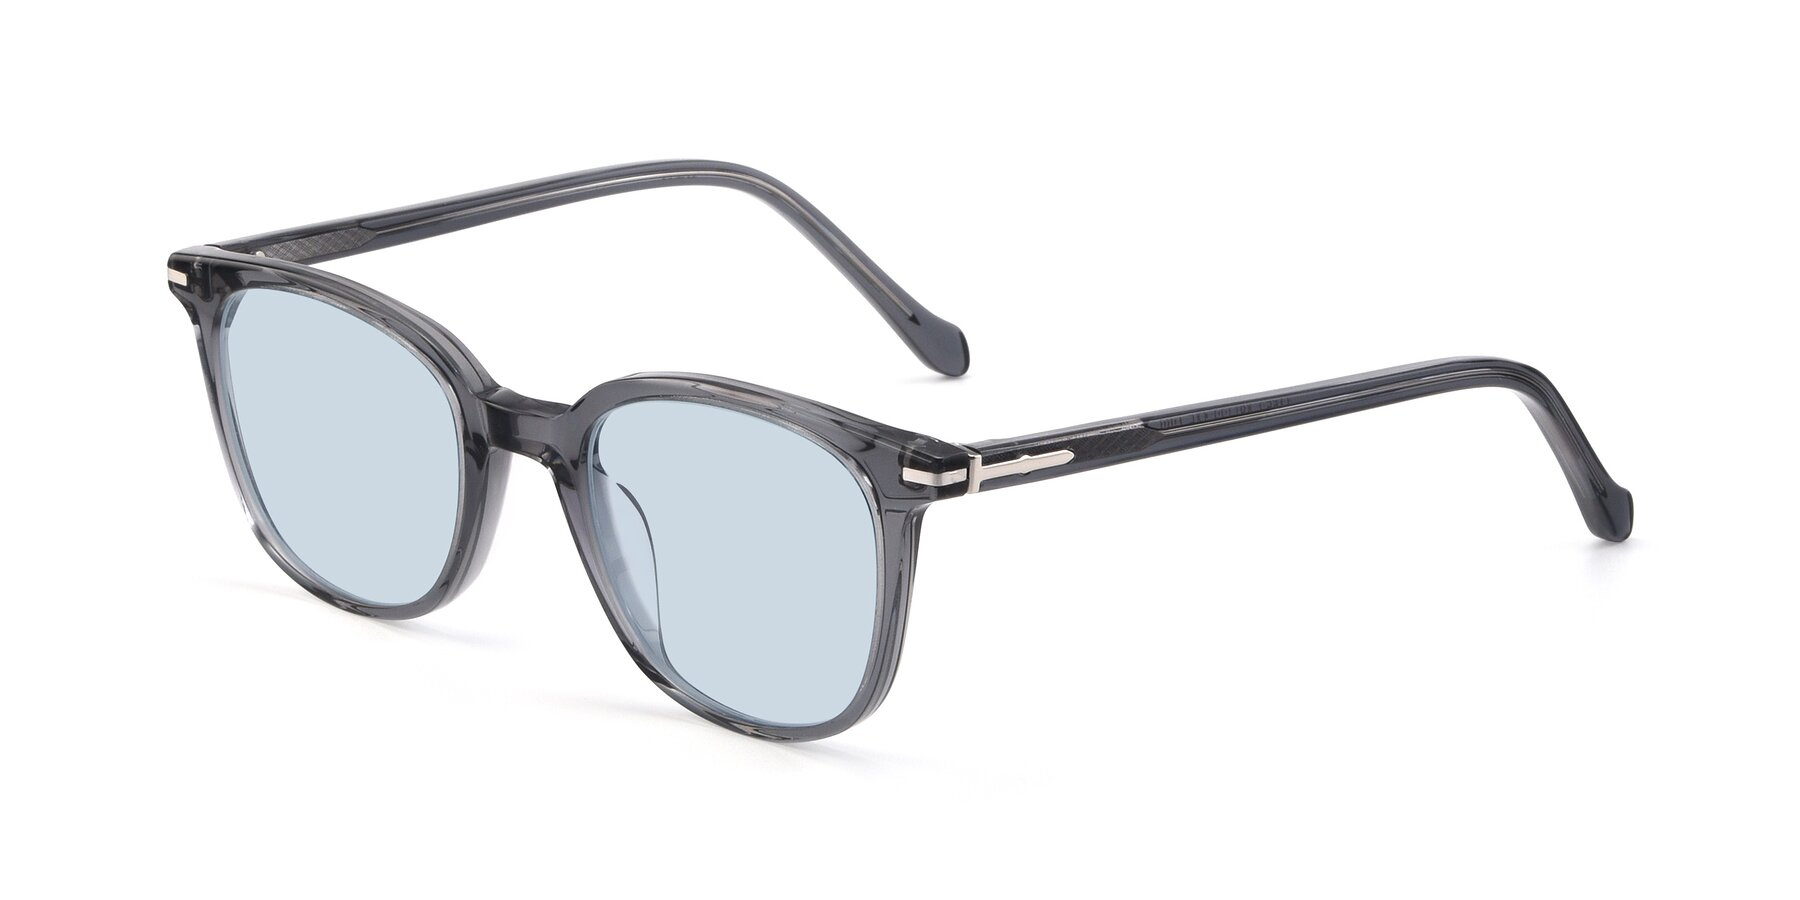 Angle of 17562 in Transparent Grey with Light Blue Tinted Lenses